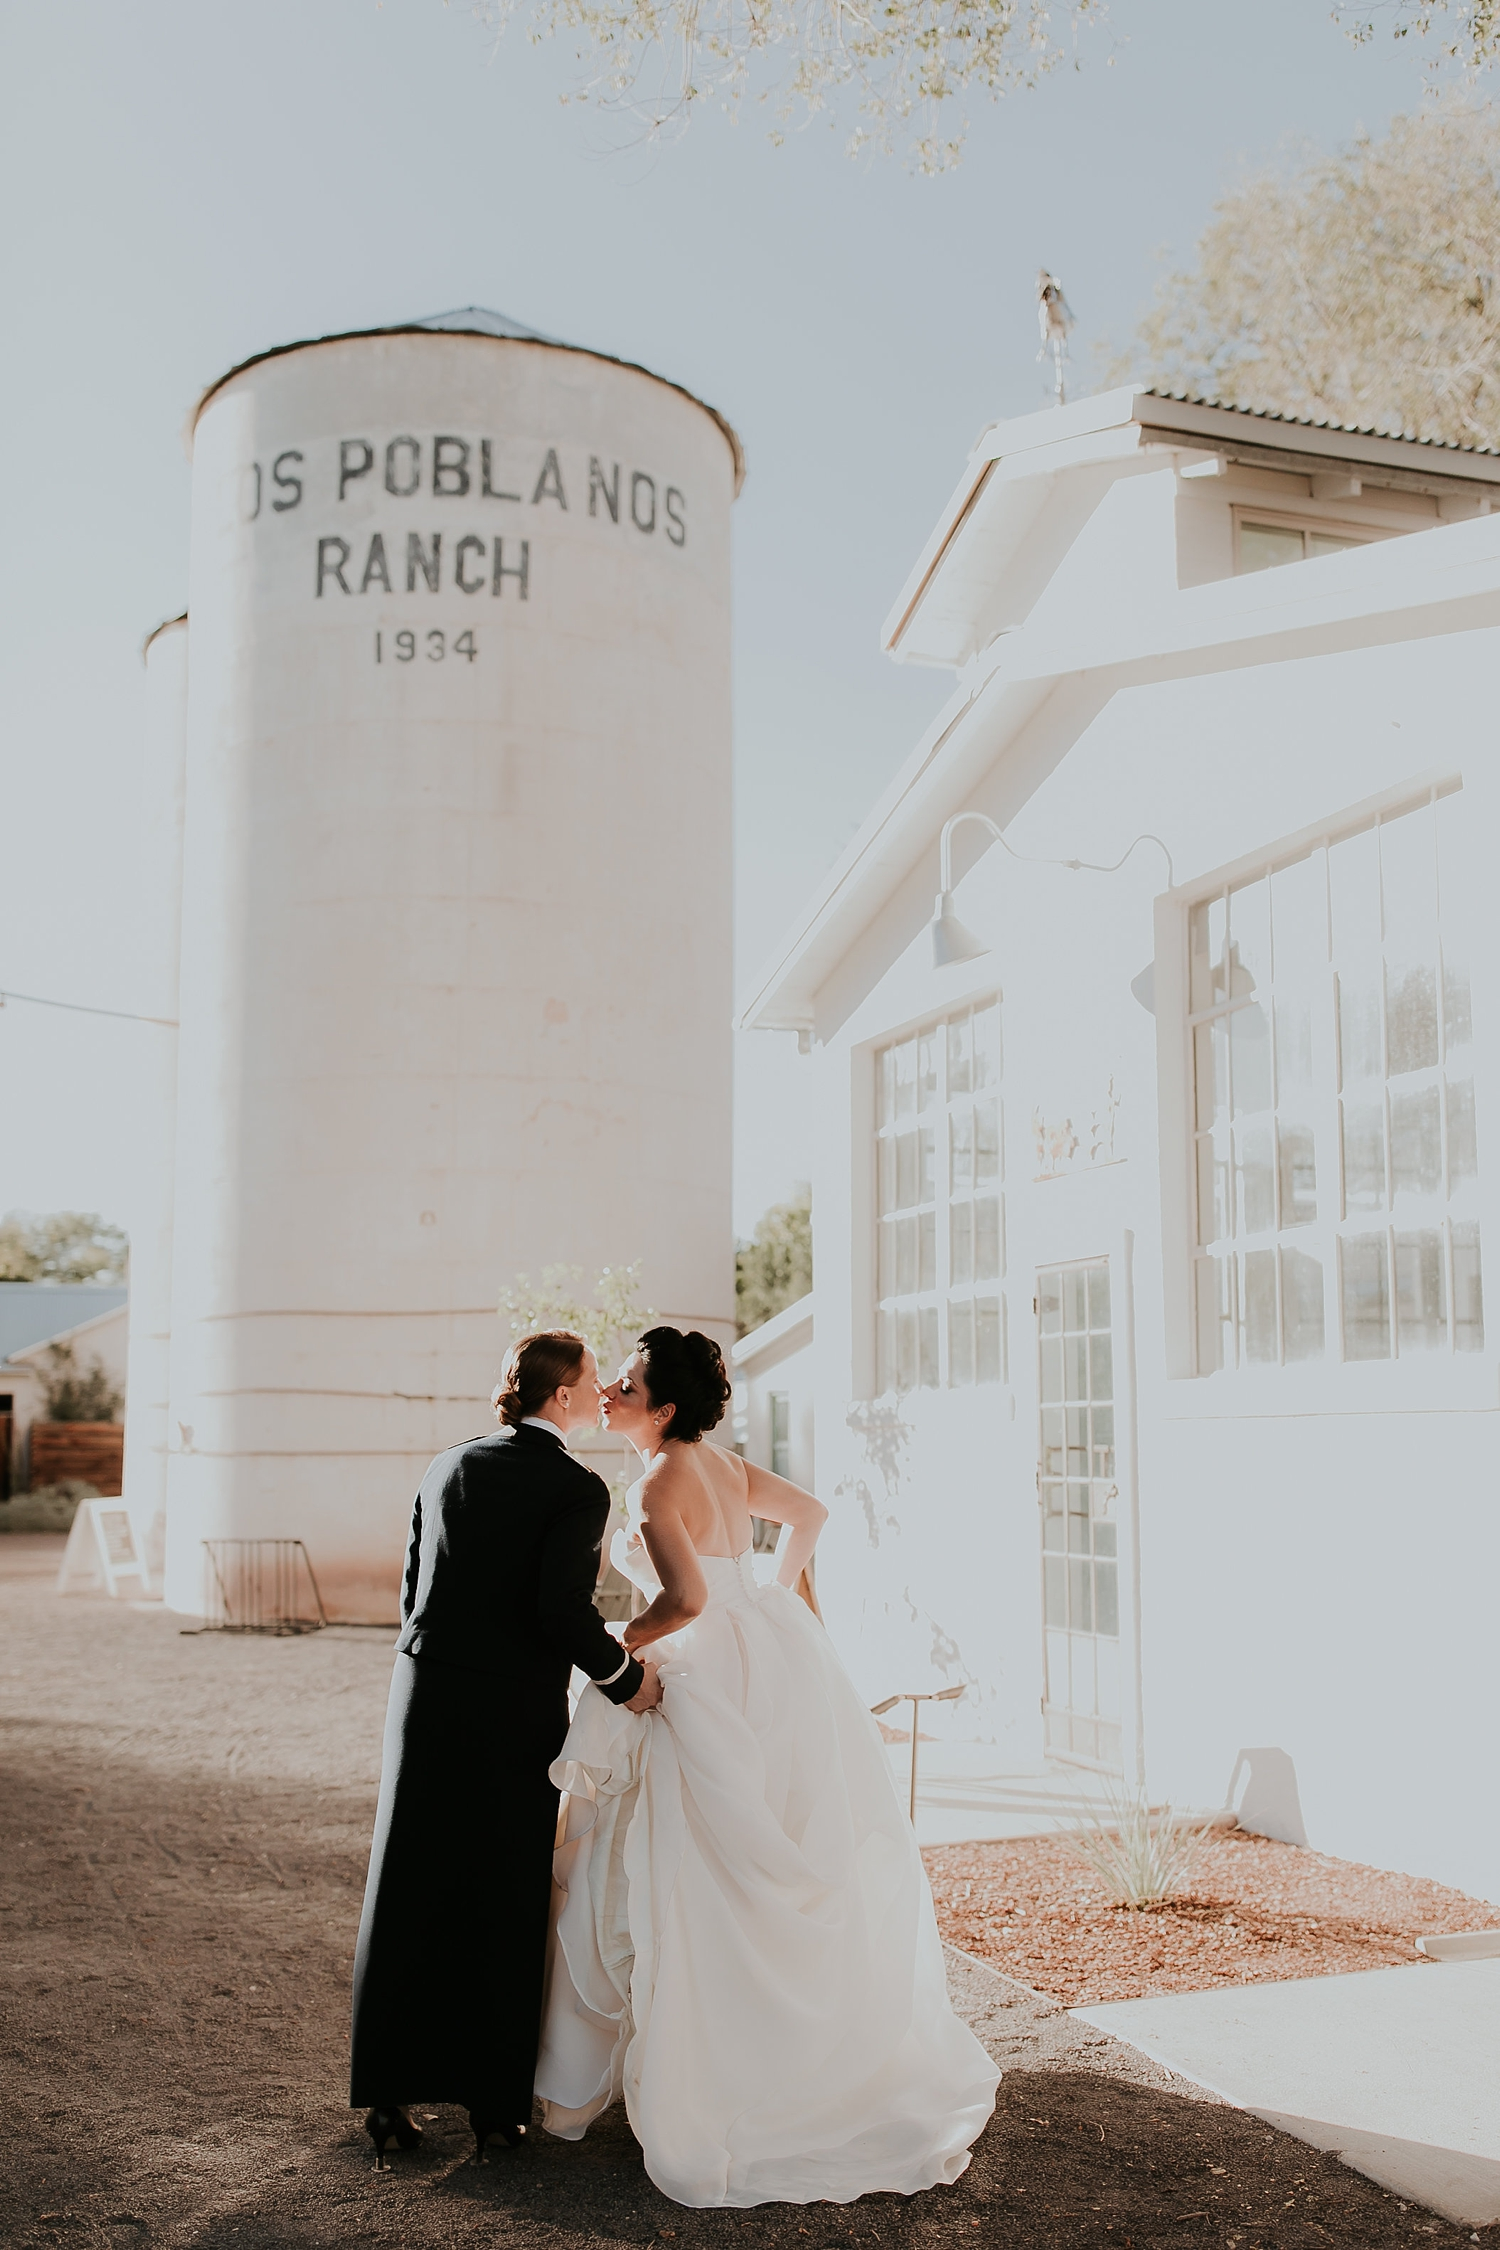 Alicia+lucia+photography+-+albuquerque+wedding+photographer+-+santa+fe+wedding+photography+-+new+mexico+wedding+photographer+-+los+poblanos+wedding+-+los+poblanos+fall+wedding+-+los+poblanos+october+wedding_0089.jpg